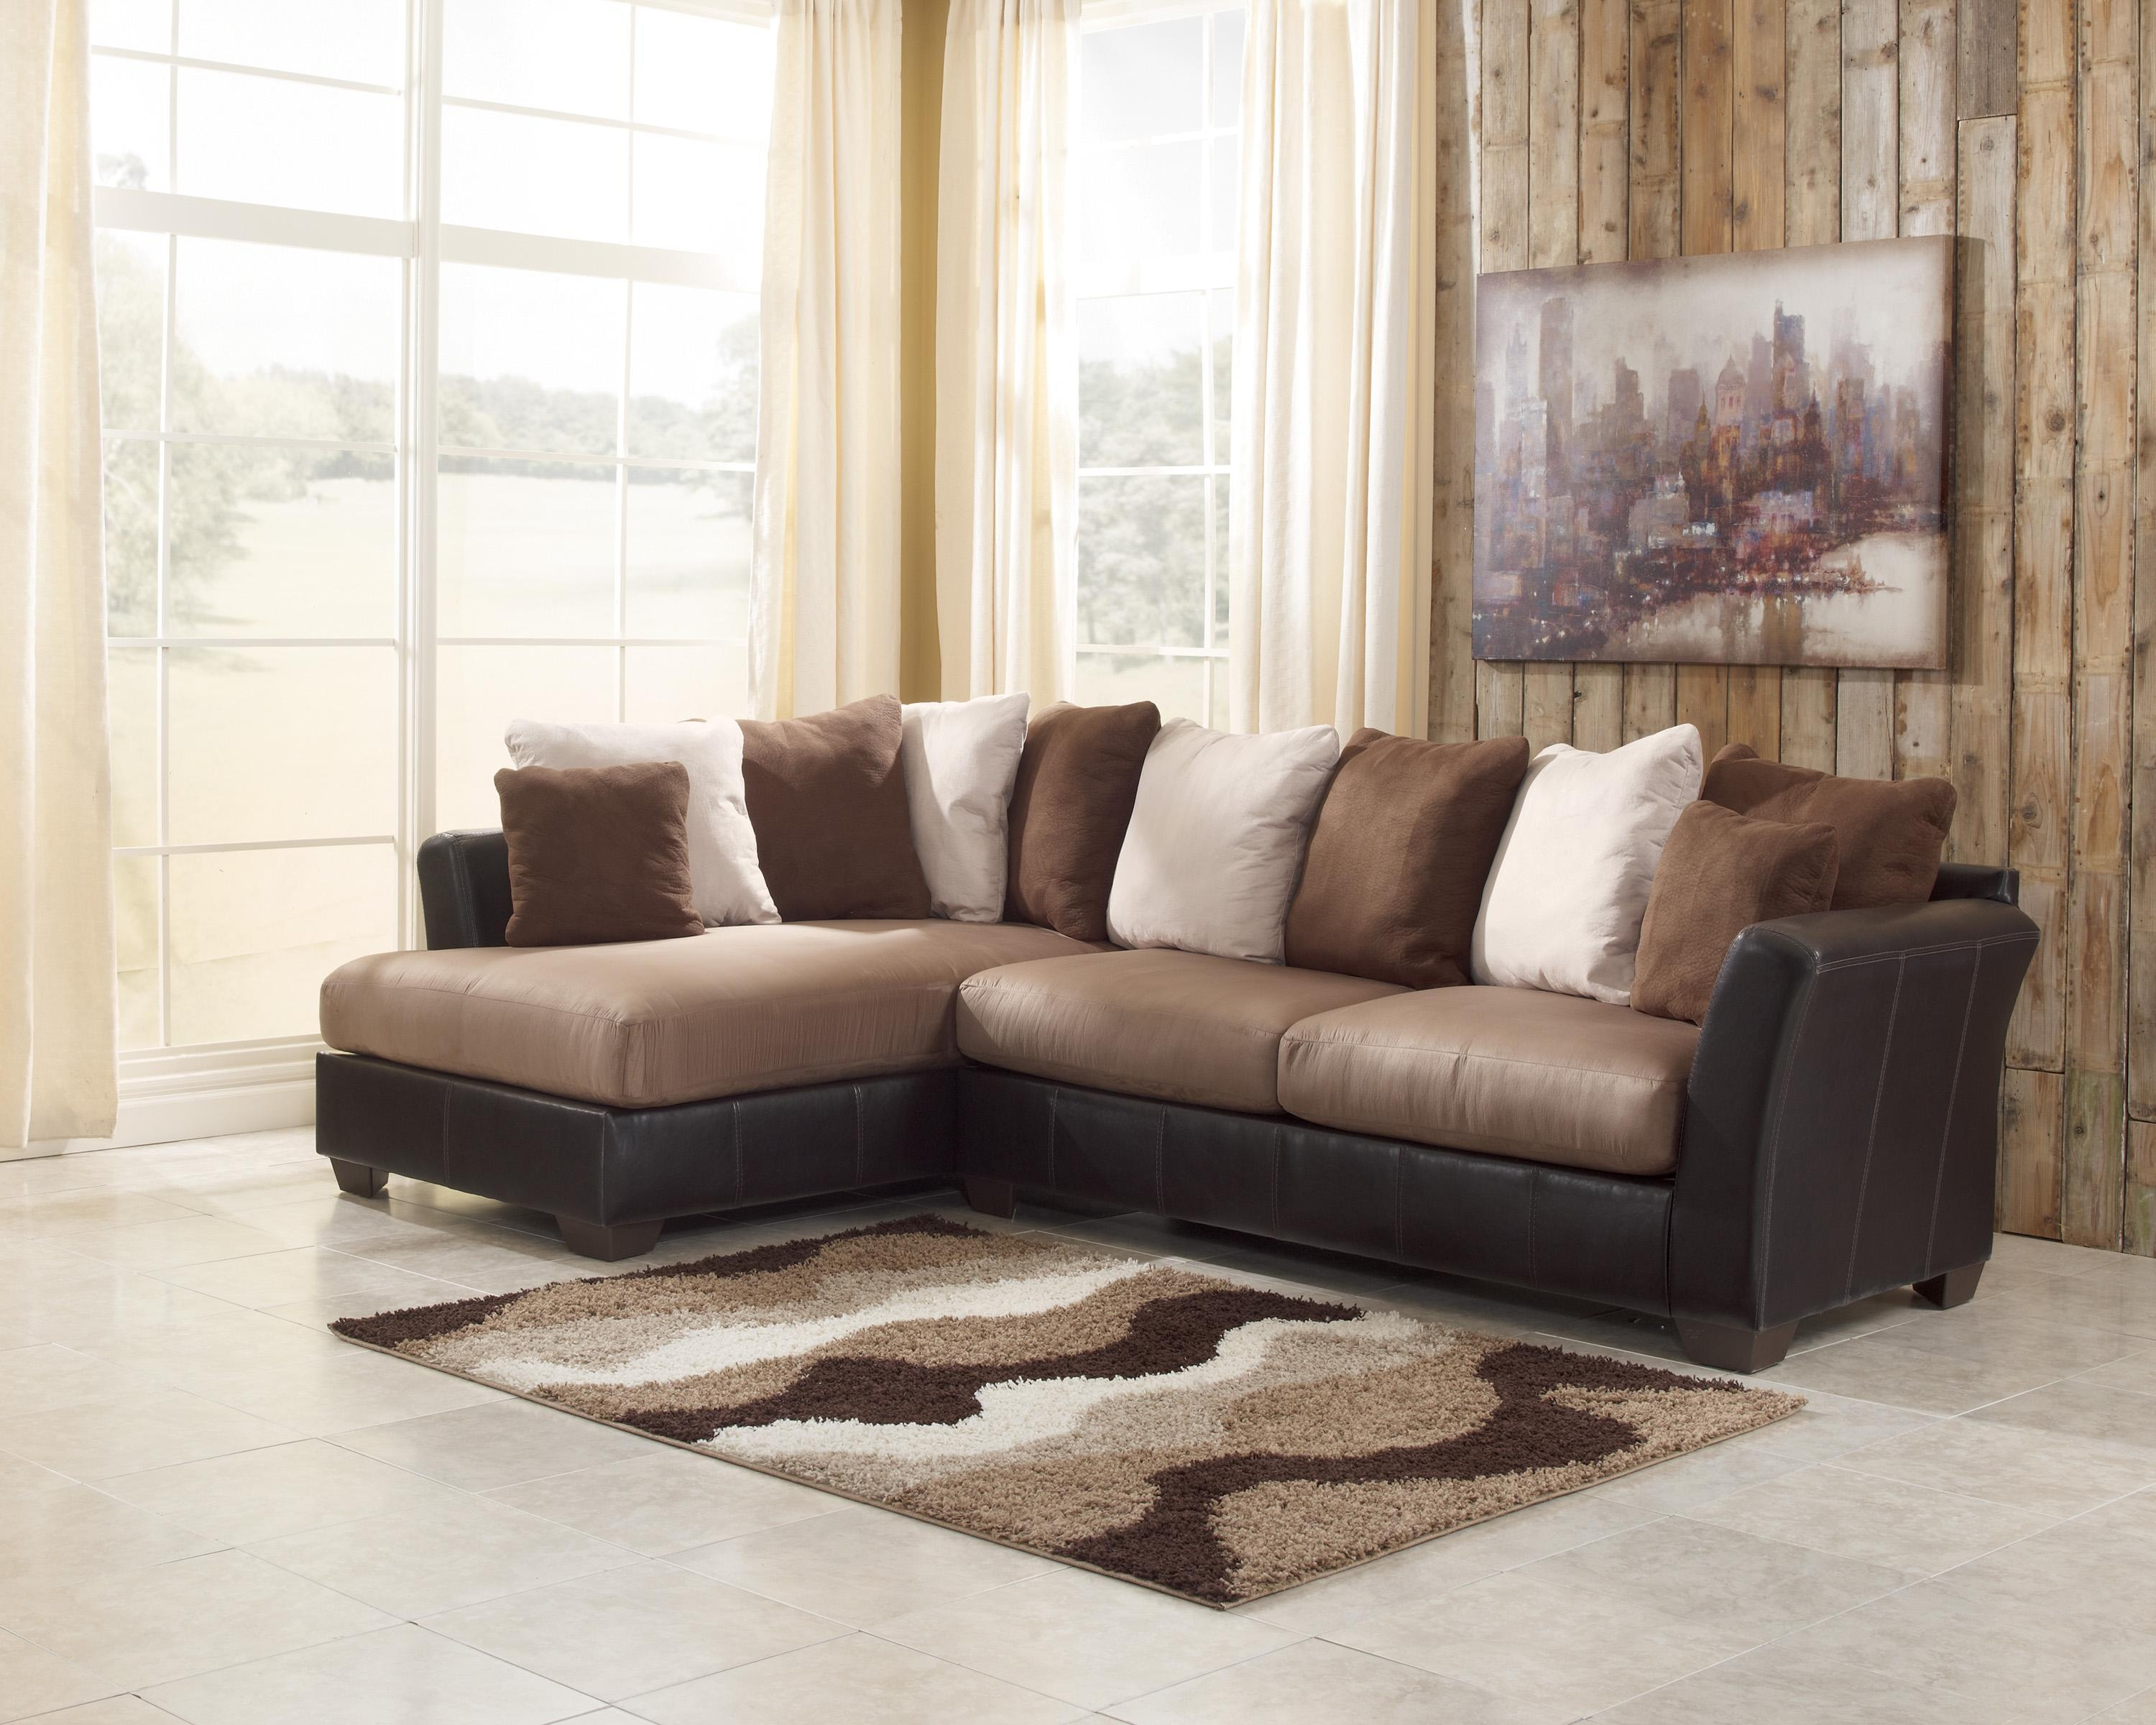 Two Piece Sectional Sofa With Chaise | Tehranmix Decoration With Regard To Sectional Sofa With 2 Chaises (Image 18 of 20)